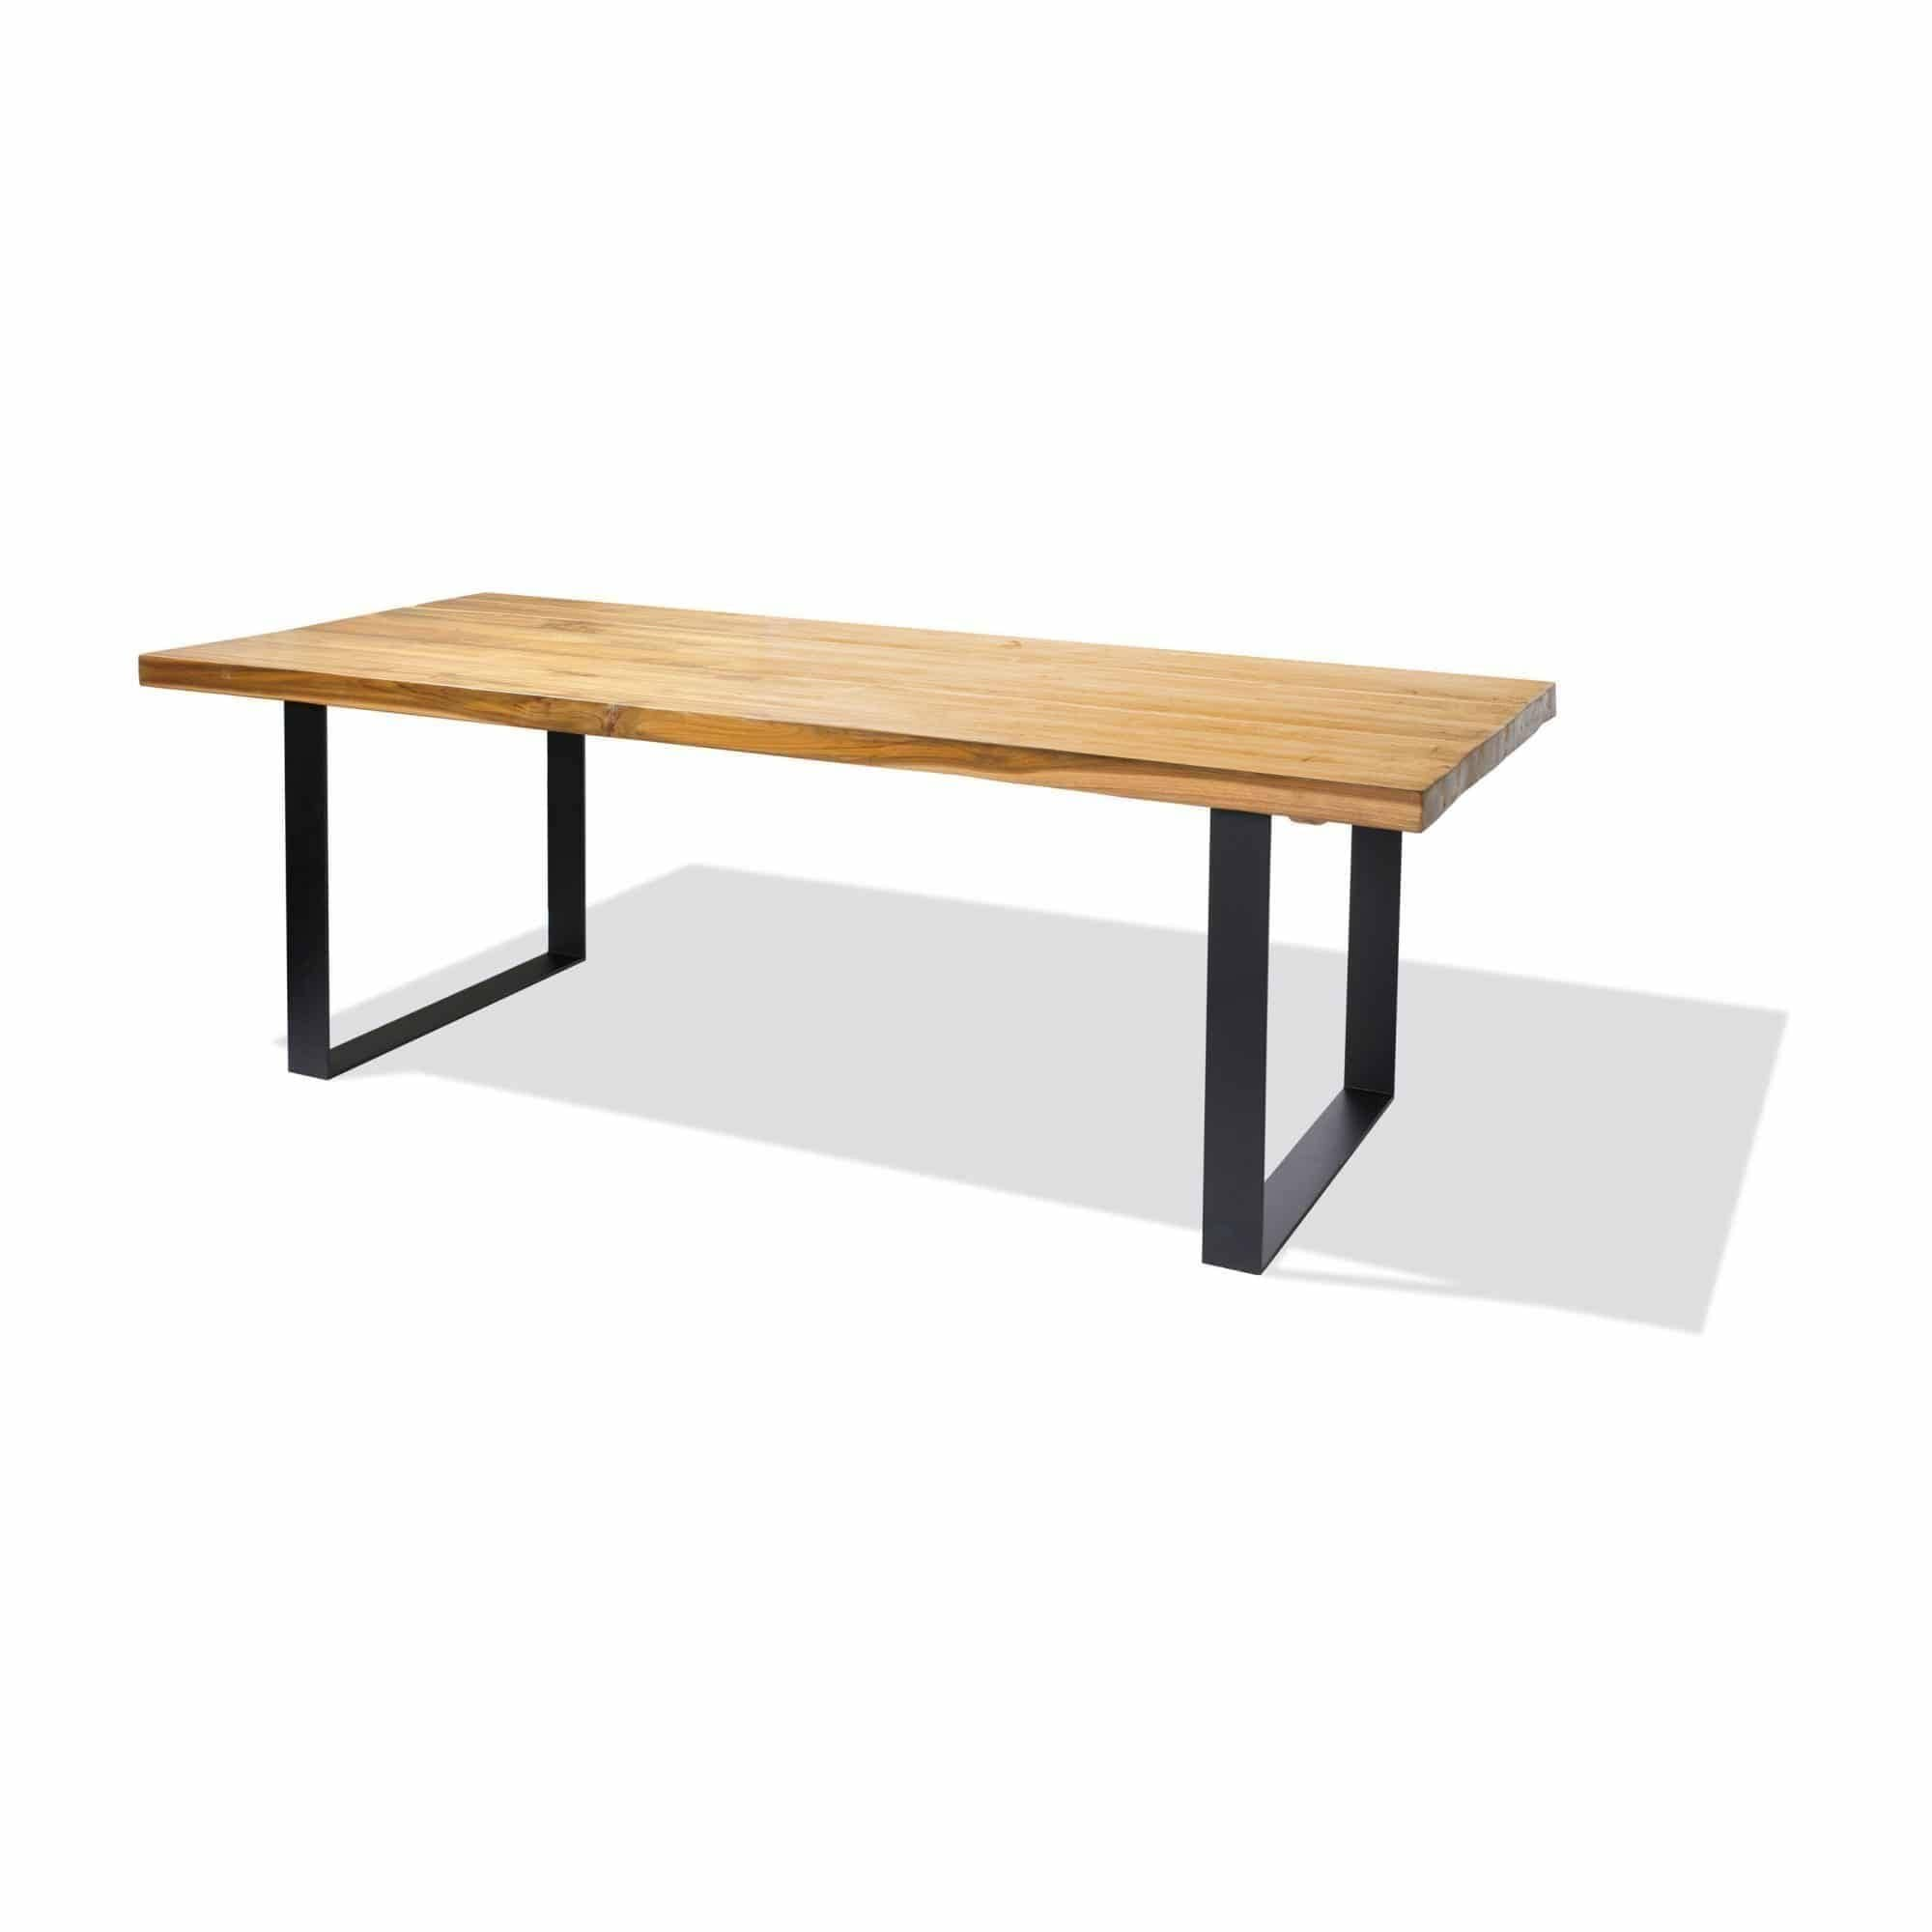 recycled teak dining table 240cm